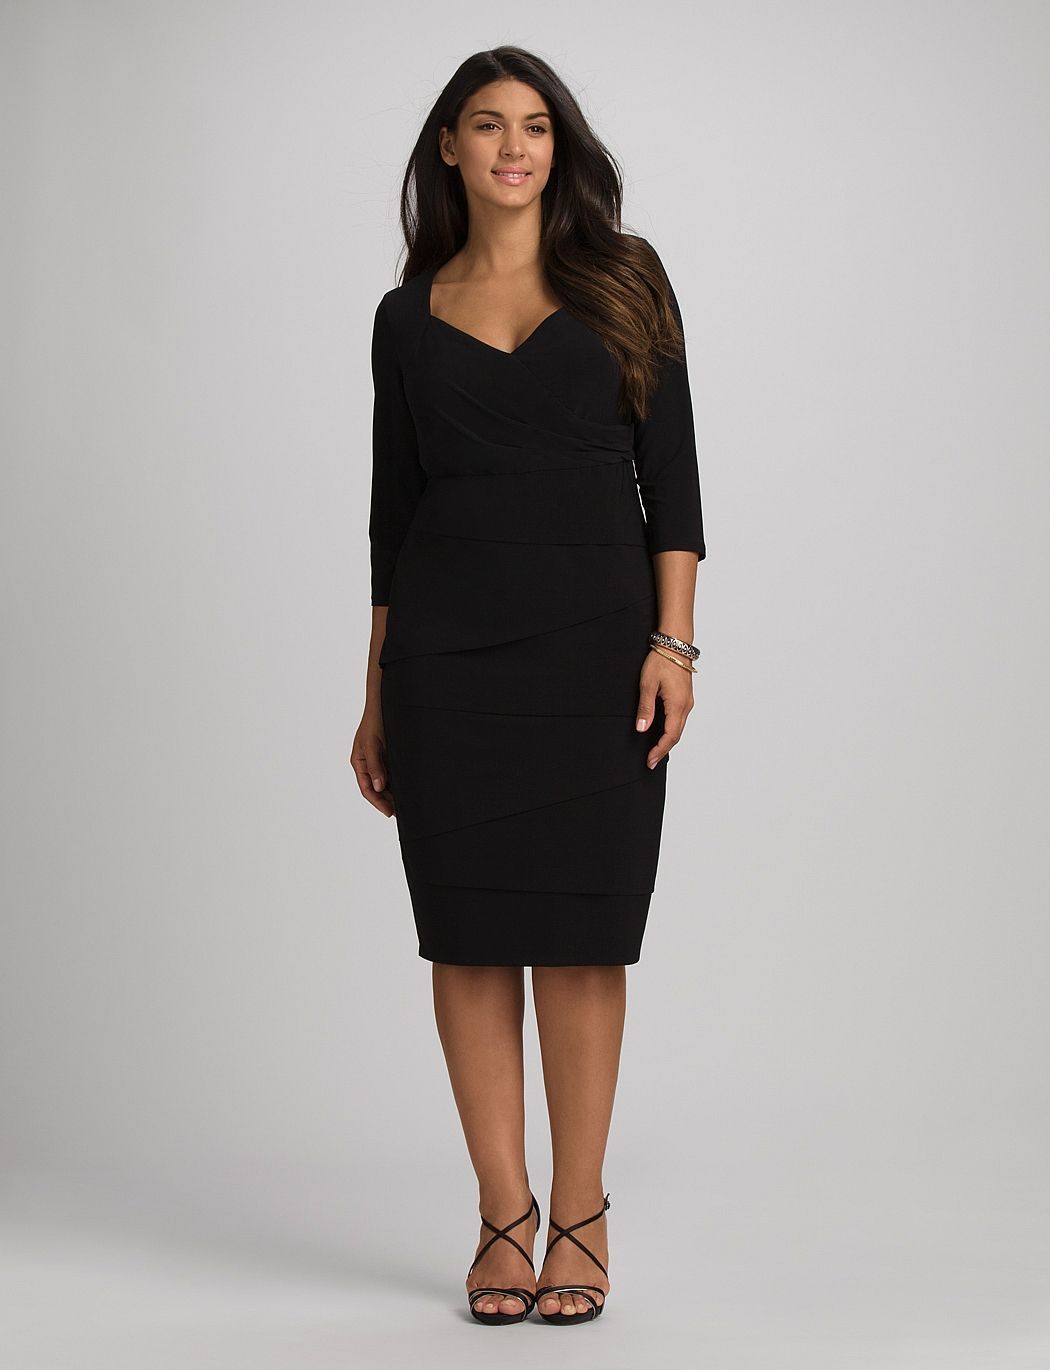 Plus Size Tummy Control Sheath Dress  Little black dress, Black